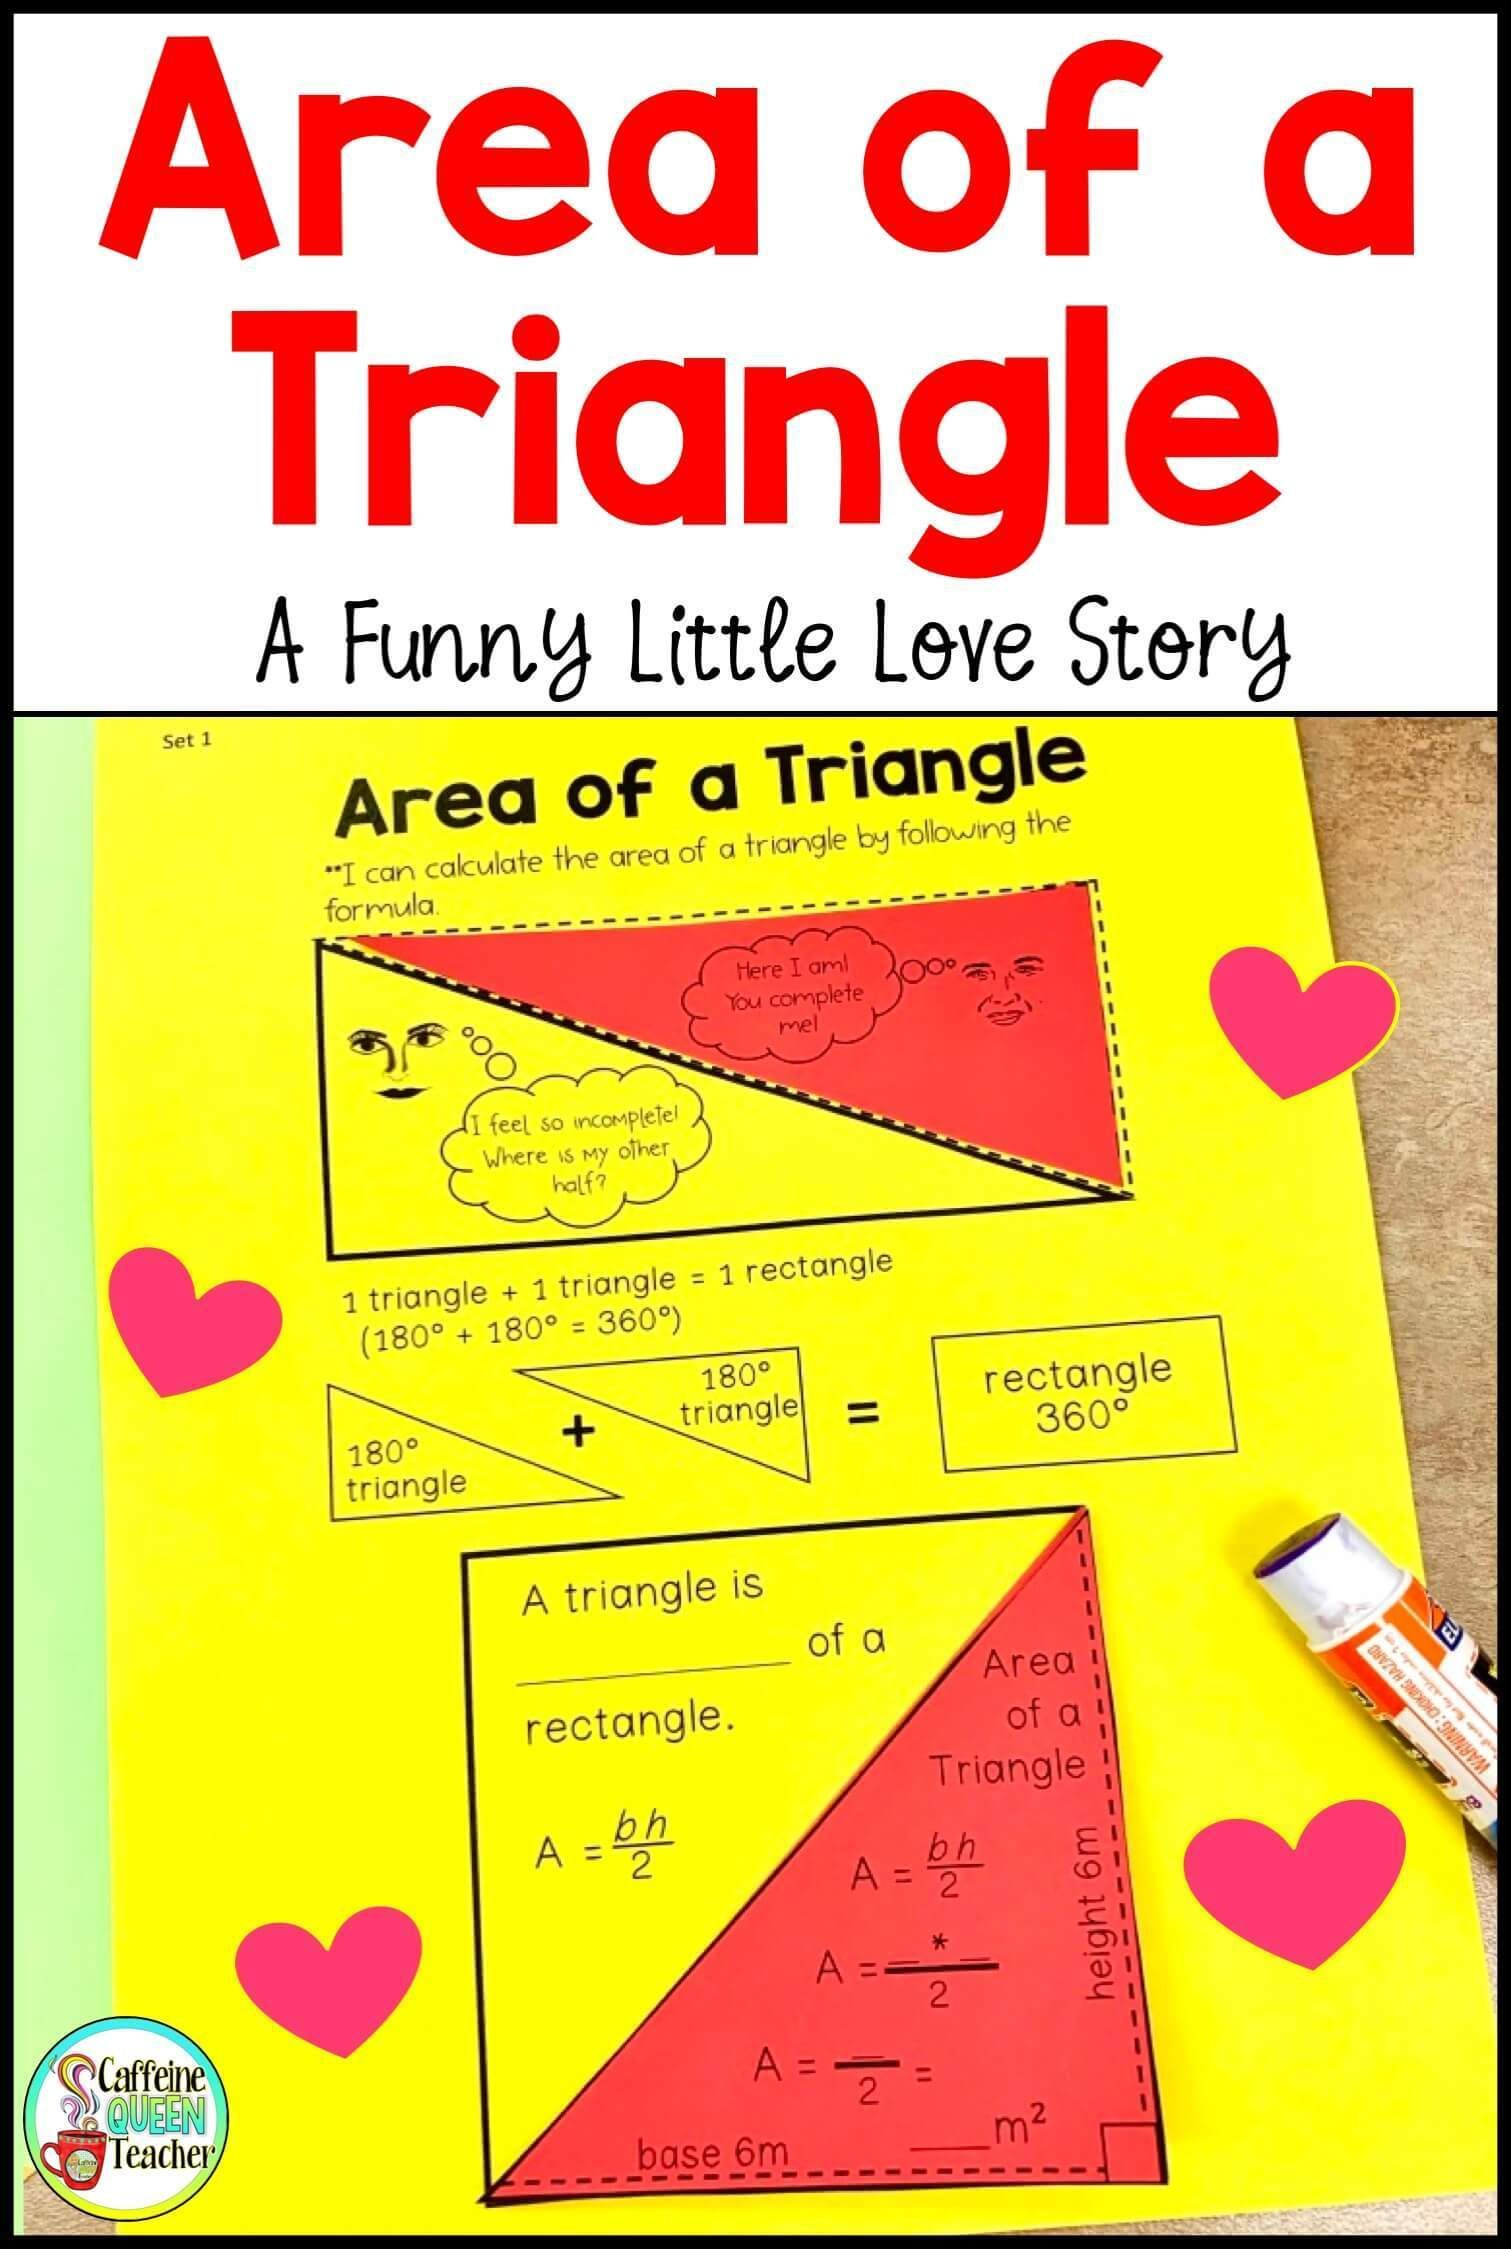 Most Memorable Area Of A Triangle Lesson Yet